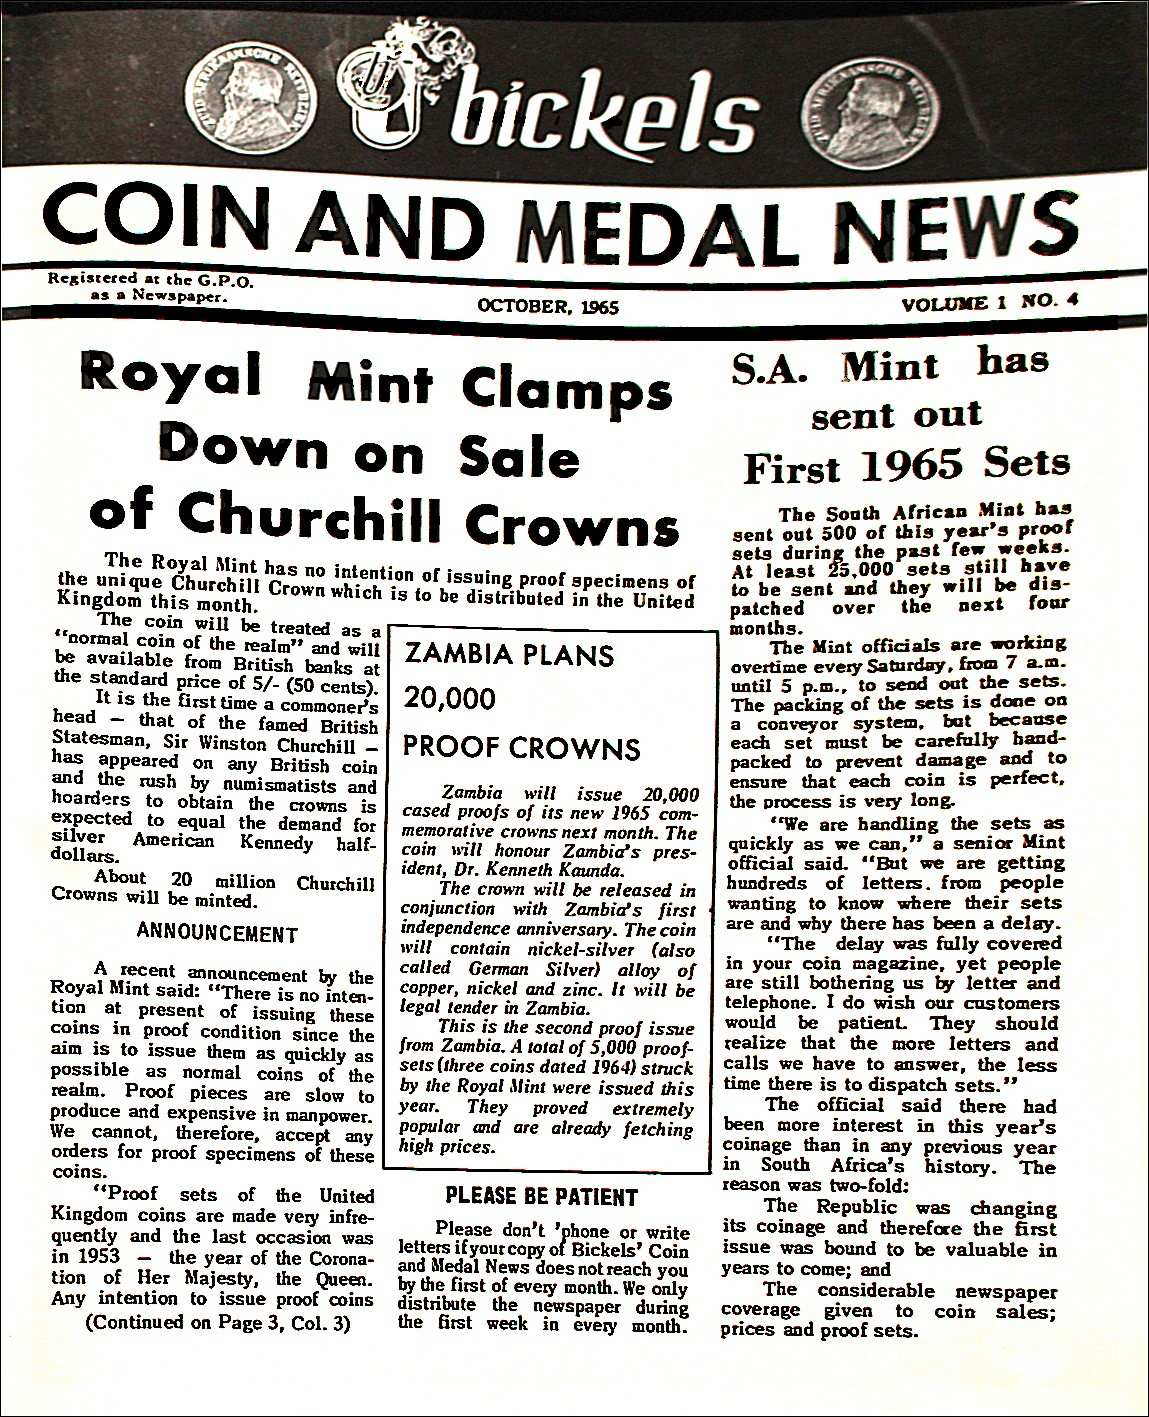 Bickels Coin & Medal News October 1965 Vol 1 No 4